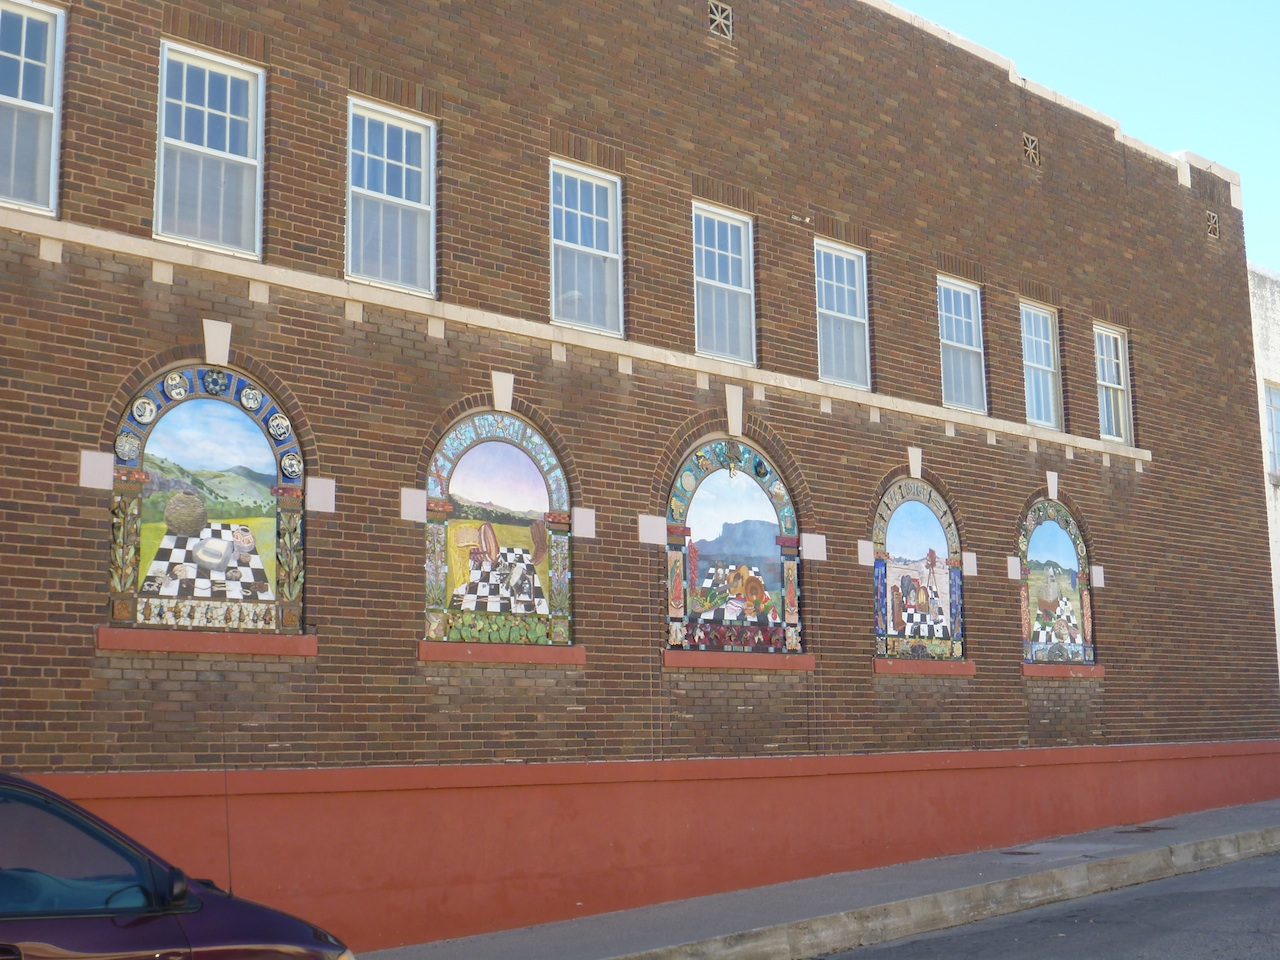 Mural Painted On Window Inserts.  There Are Plates And Tiles Protruding From The Wall Art Also